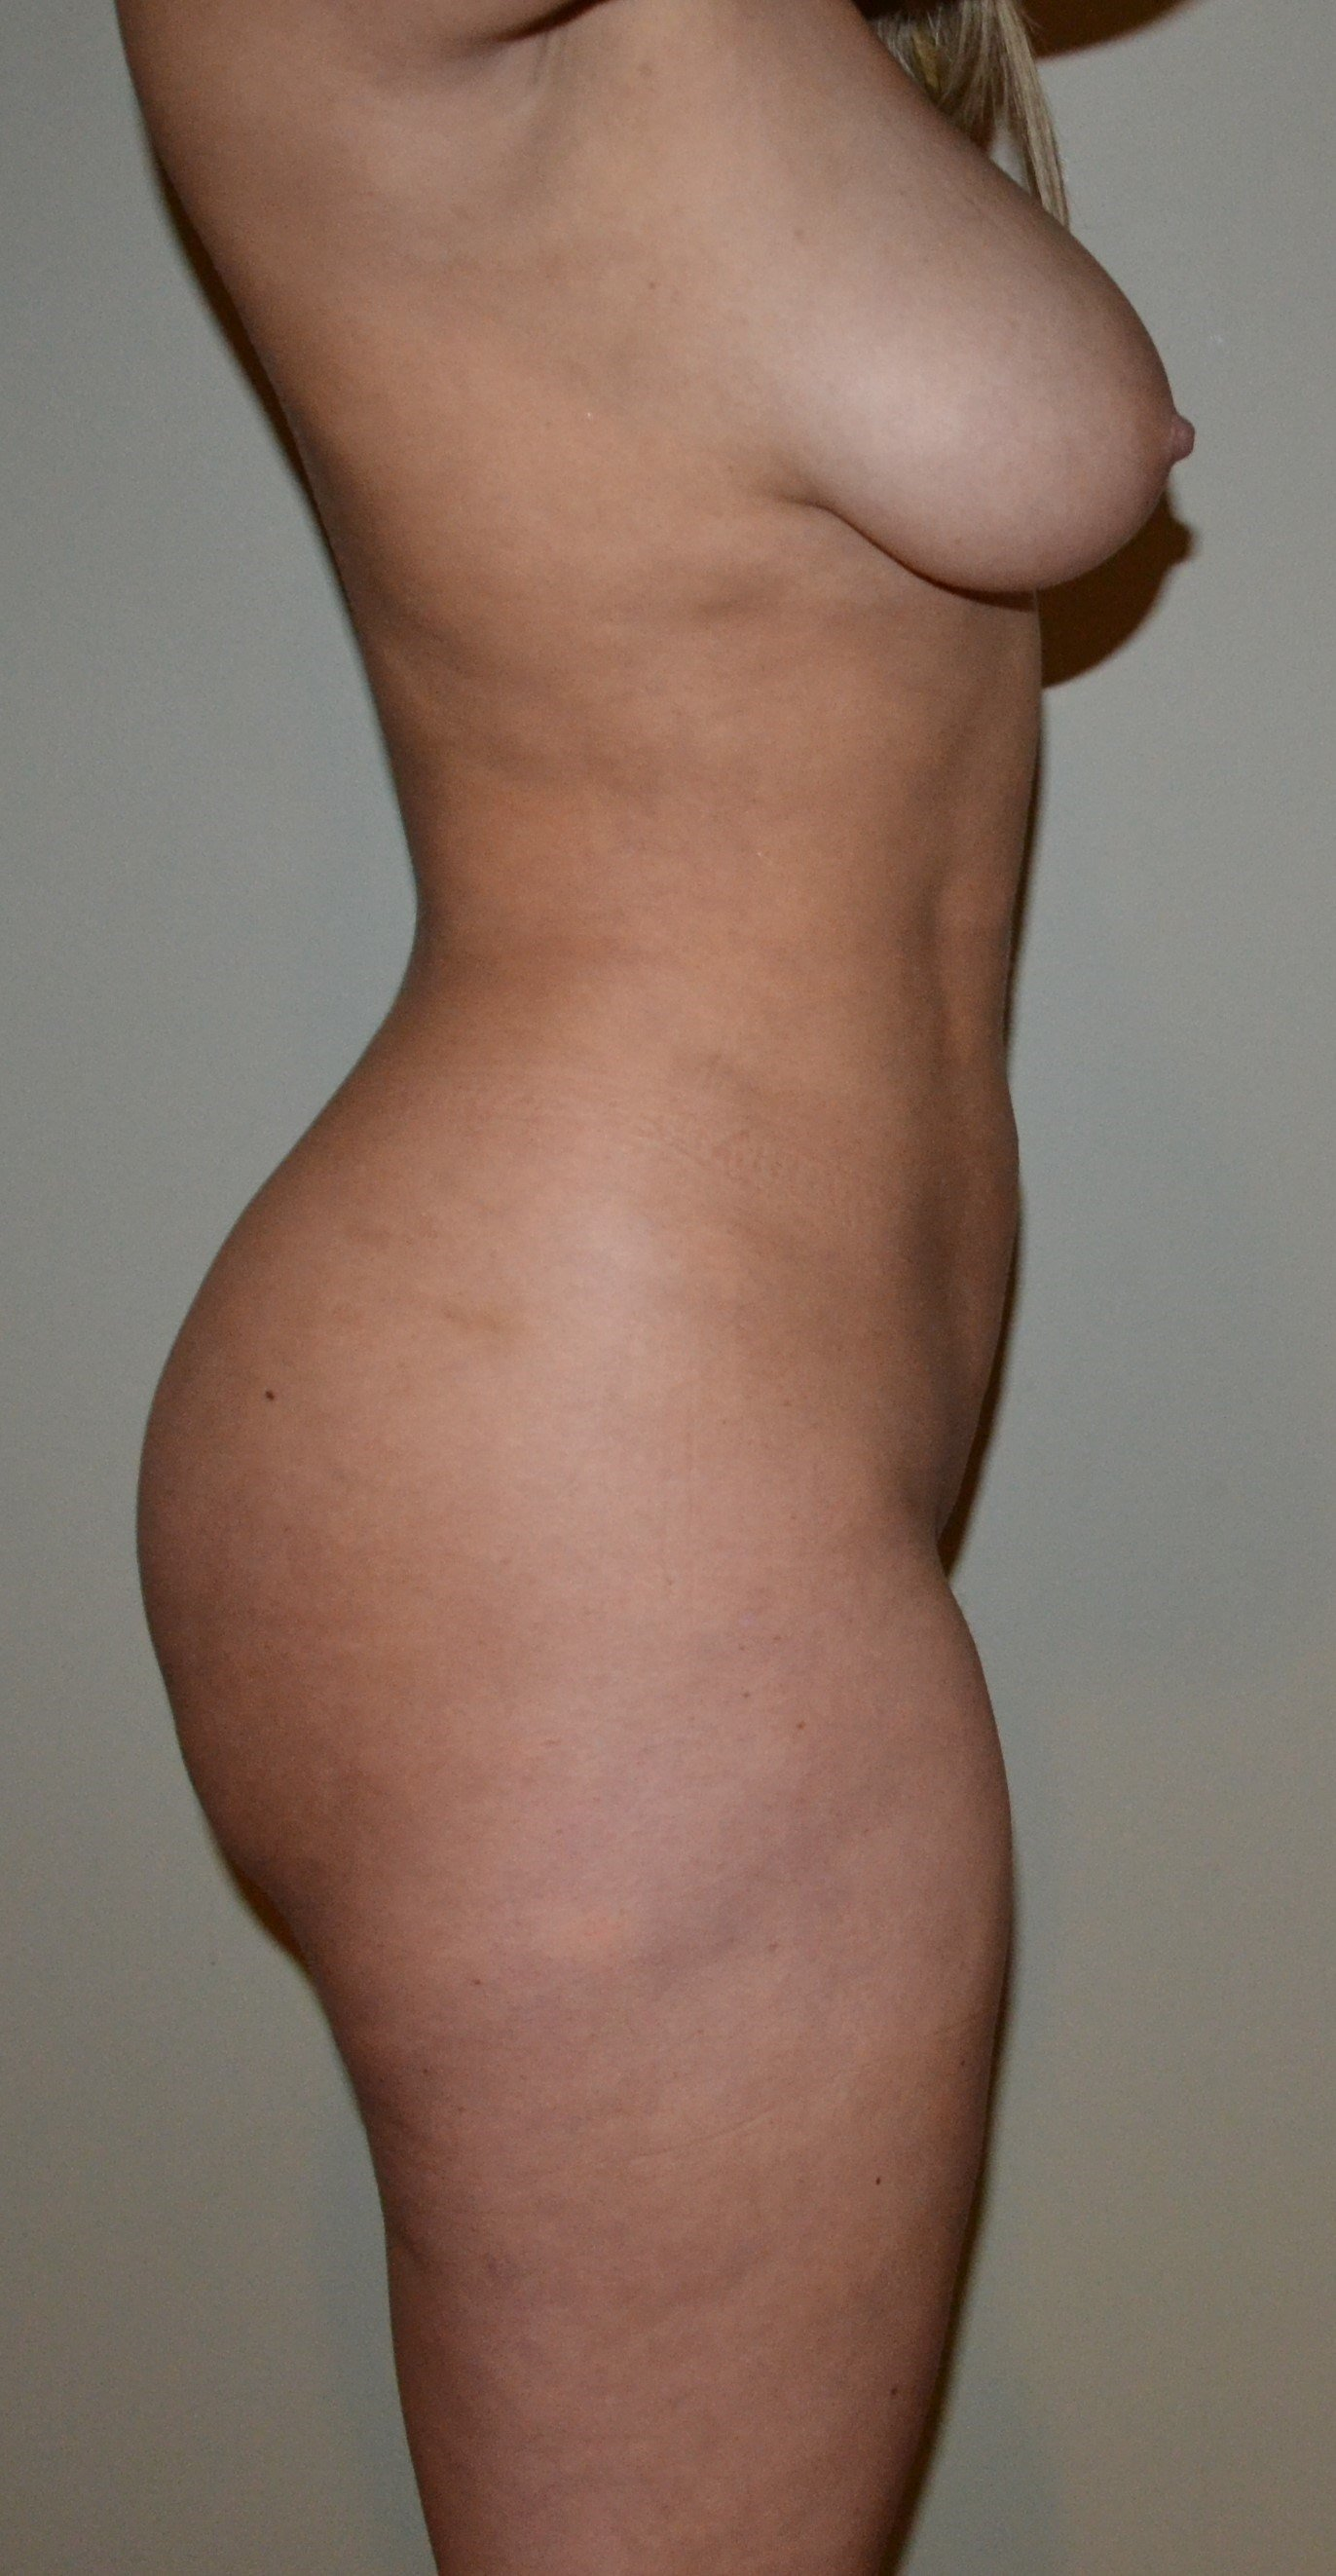 VASER Hi Def Lipo and BBL After, 5 months post surgery